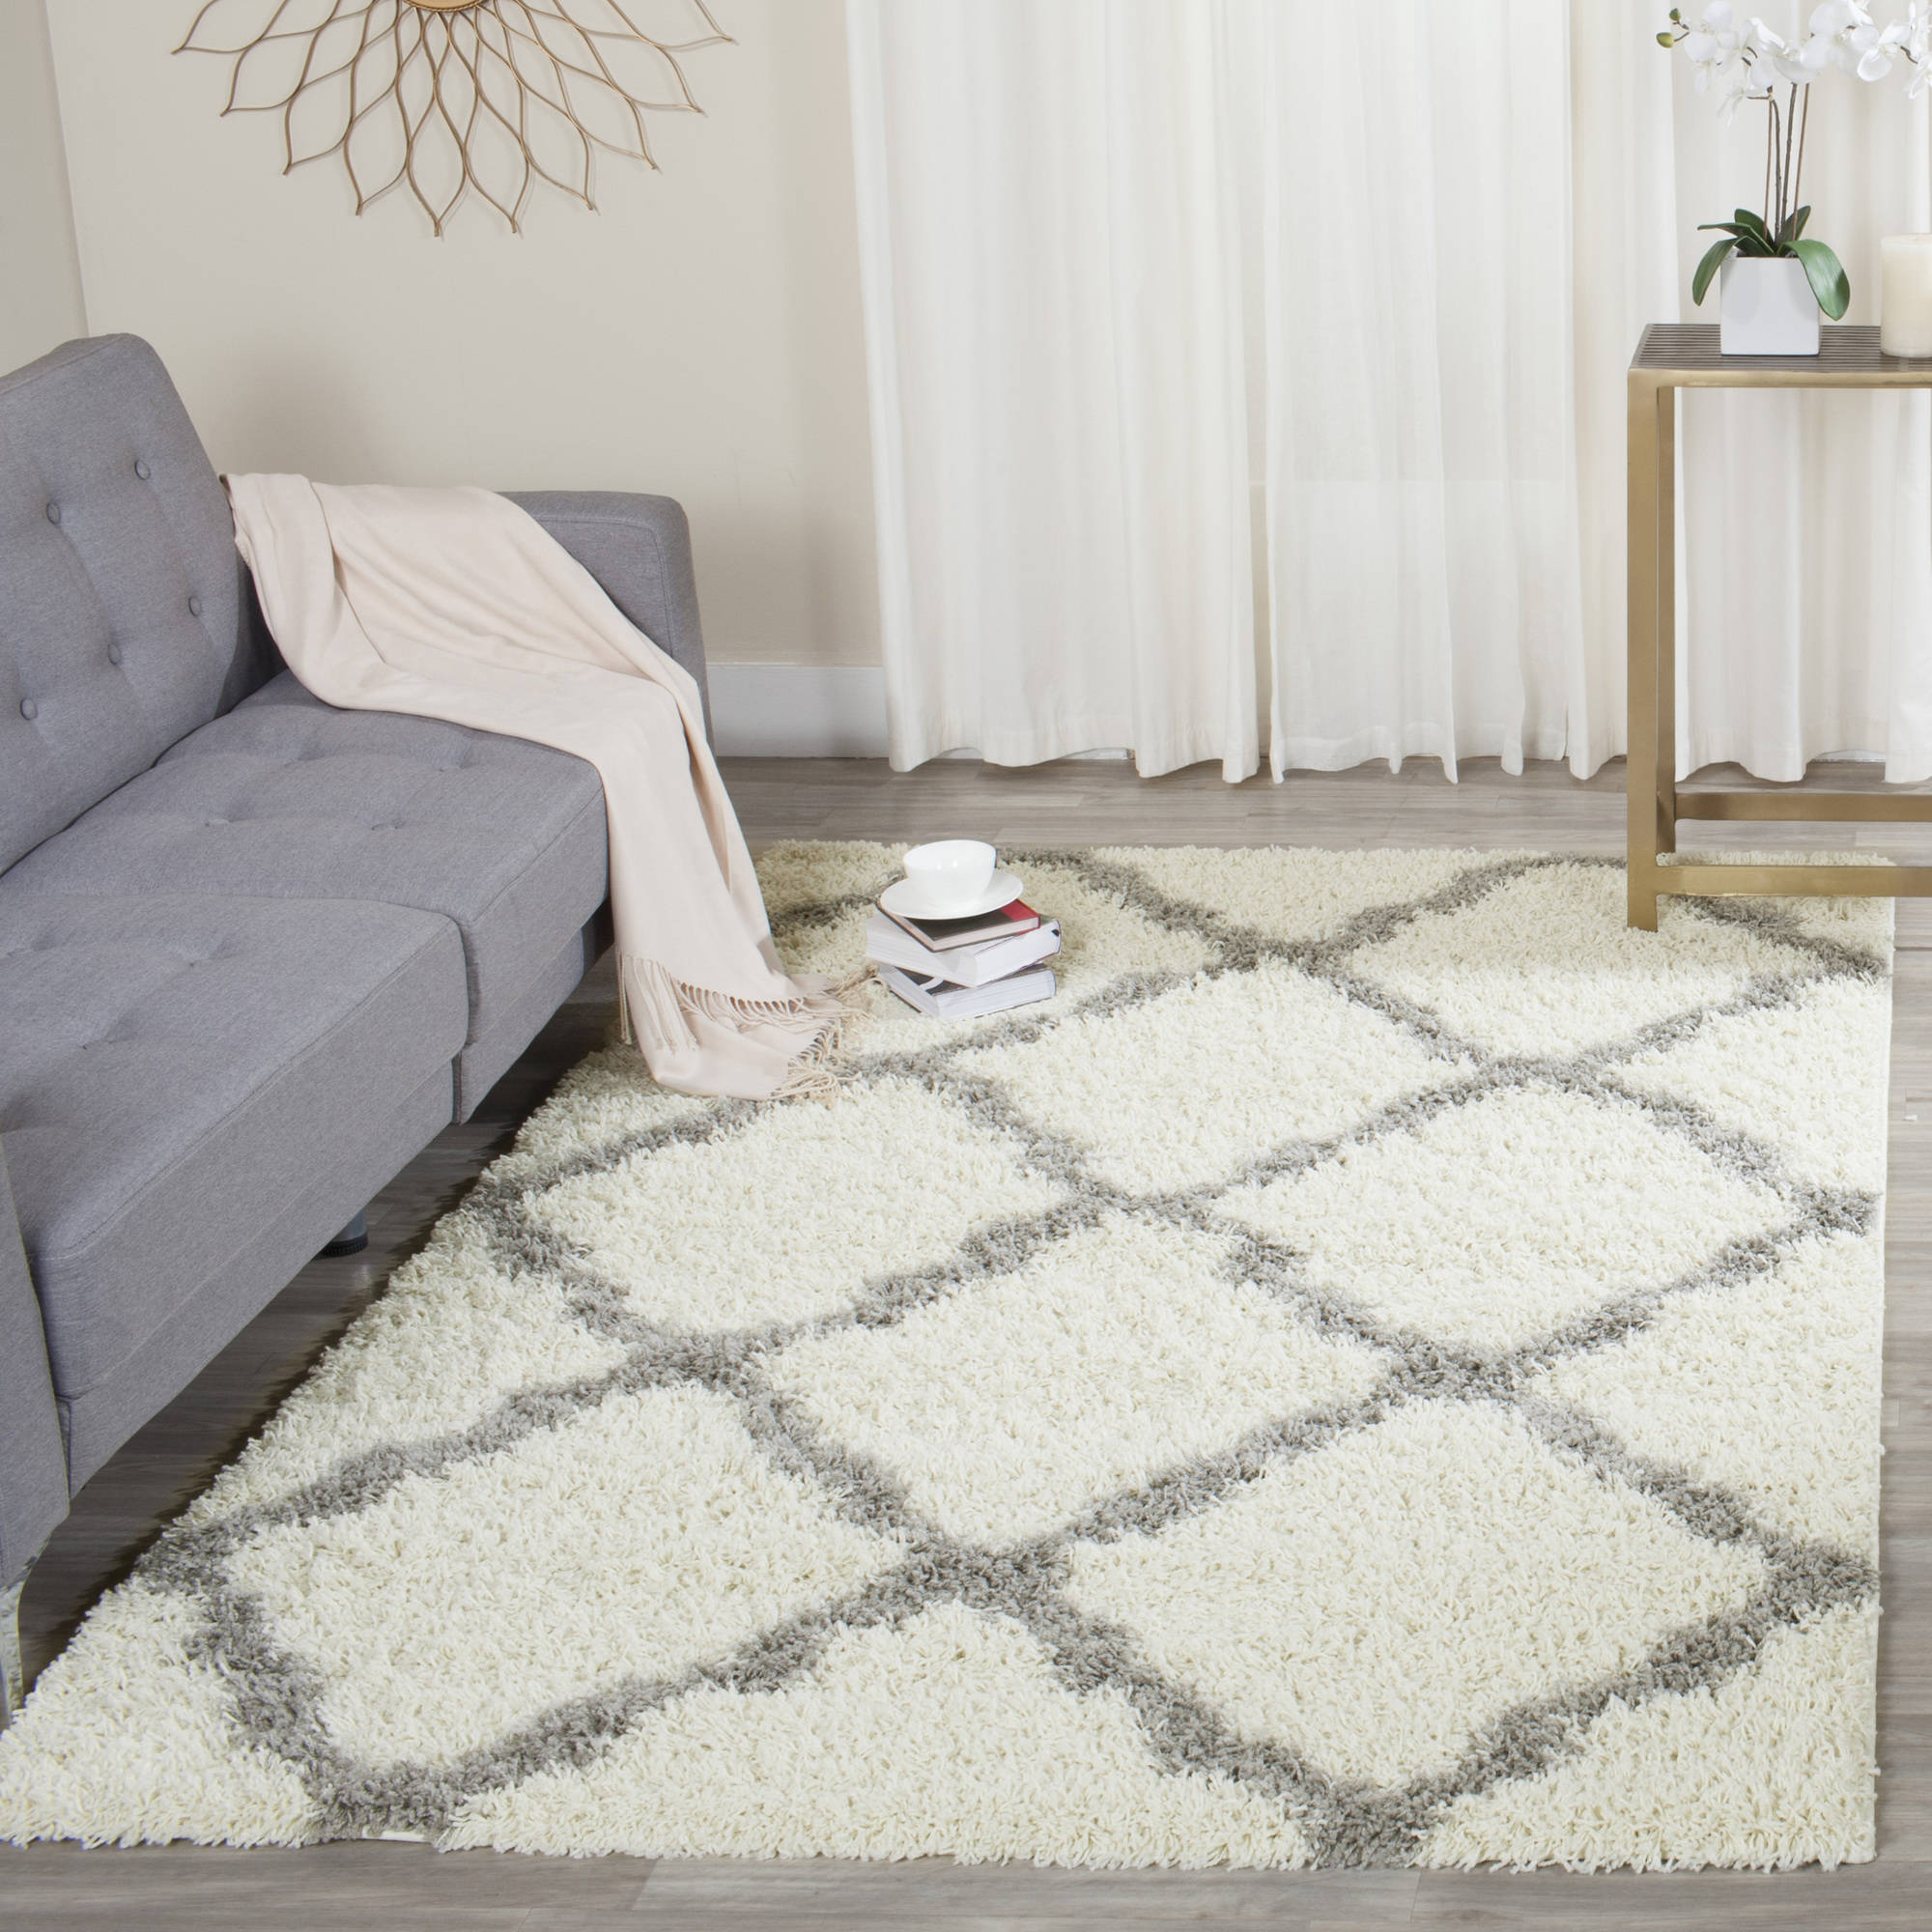 Safavieh Daley Power-Loomed Shag Area Rug